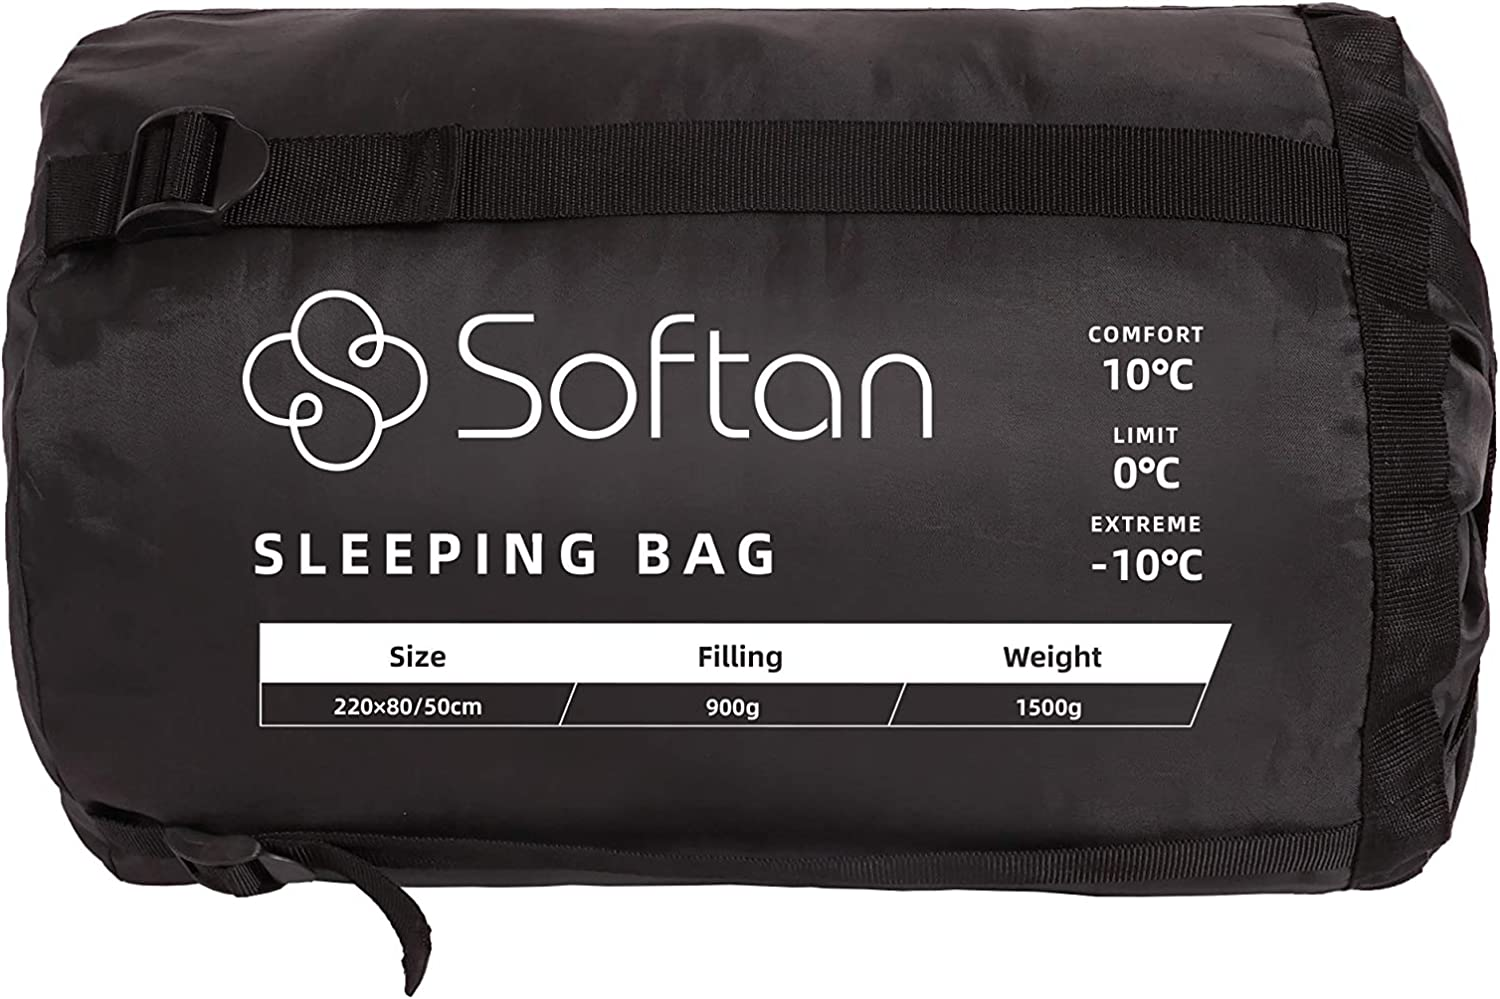 Camping /& Outdoor Activities Water Resistant 4 Season Sleeping Bags for Adults Hiking Lightweight Traveling Softan Portable Mummy Sleeping Bag with Compression Sack